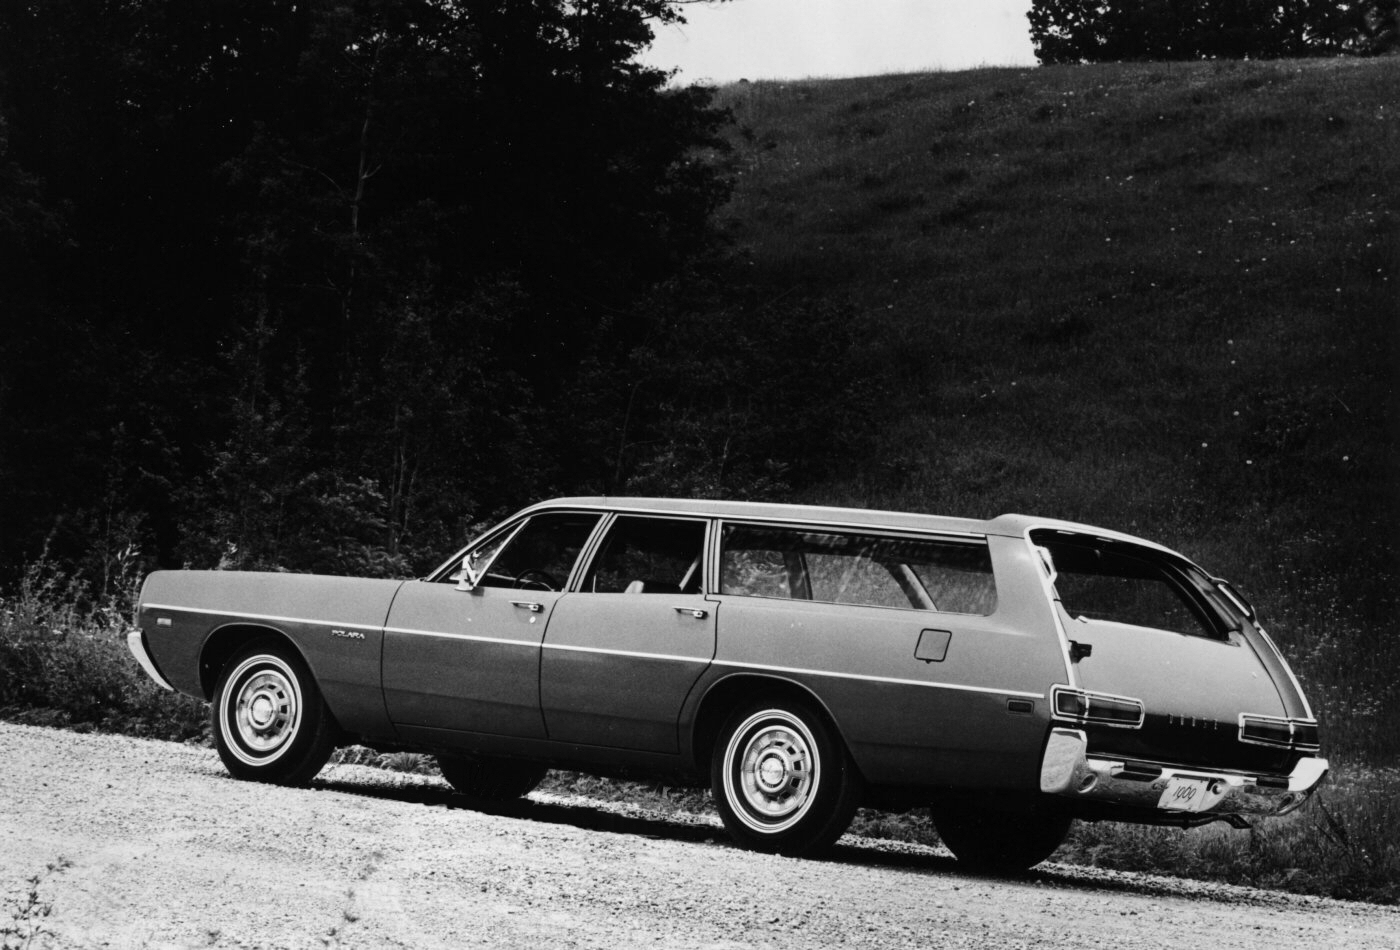 1969 Dodge Polara Wagon